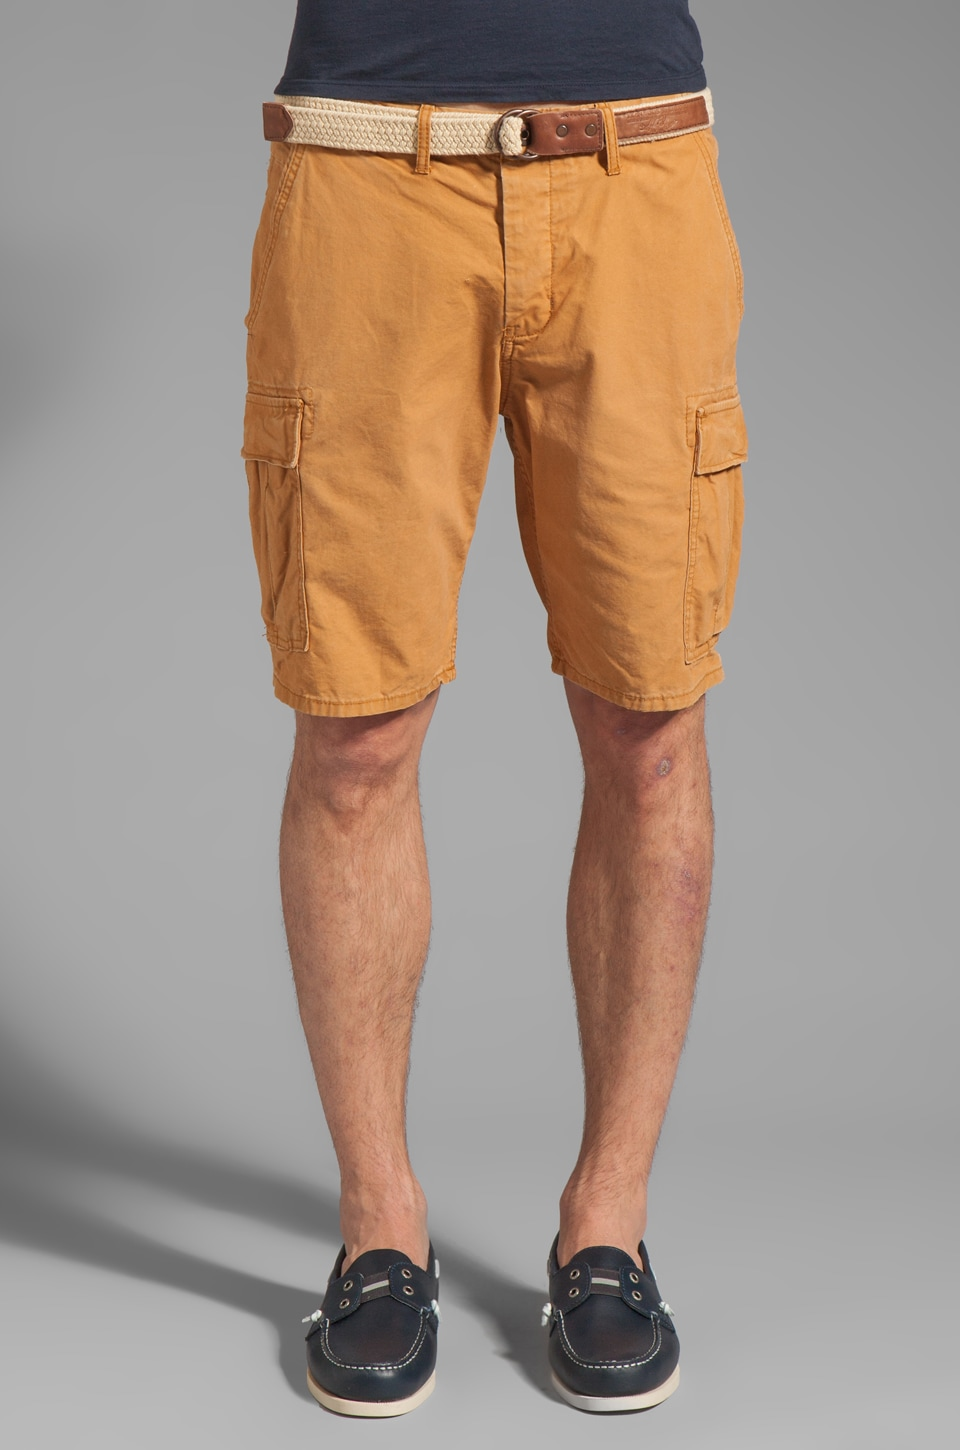 Scotch & Soda Belted Cargo Short in Ginger